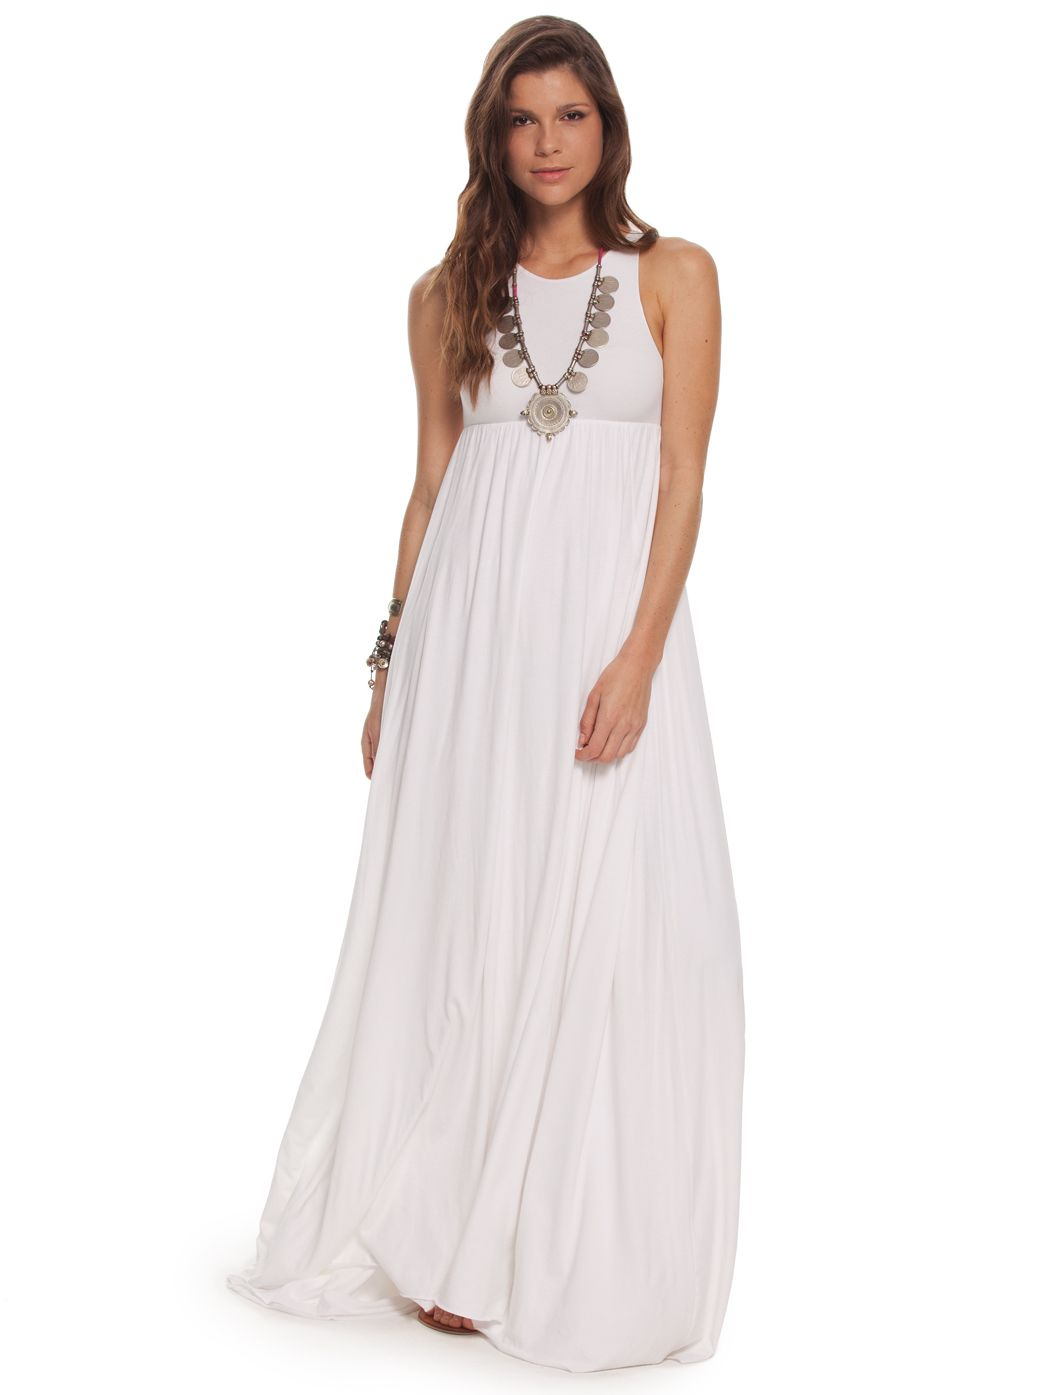 A billowing white maxi dress our white josephine dress will catch